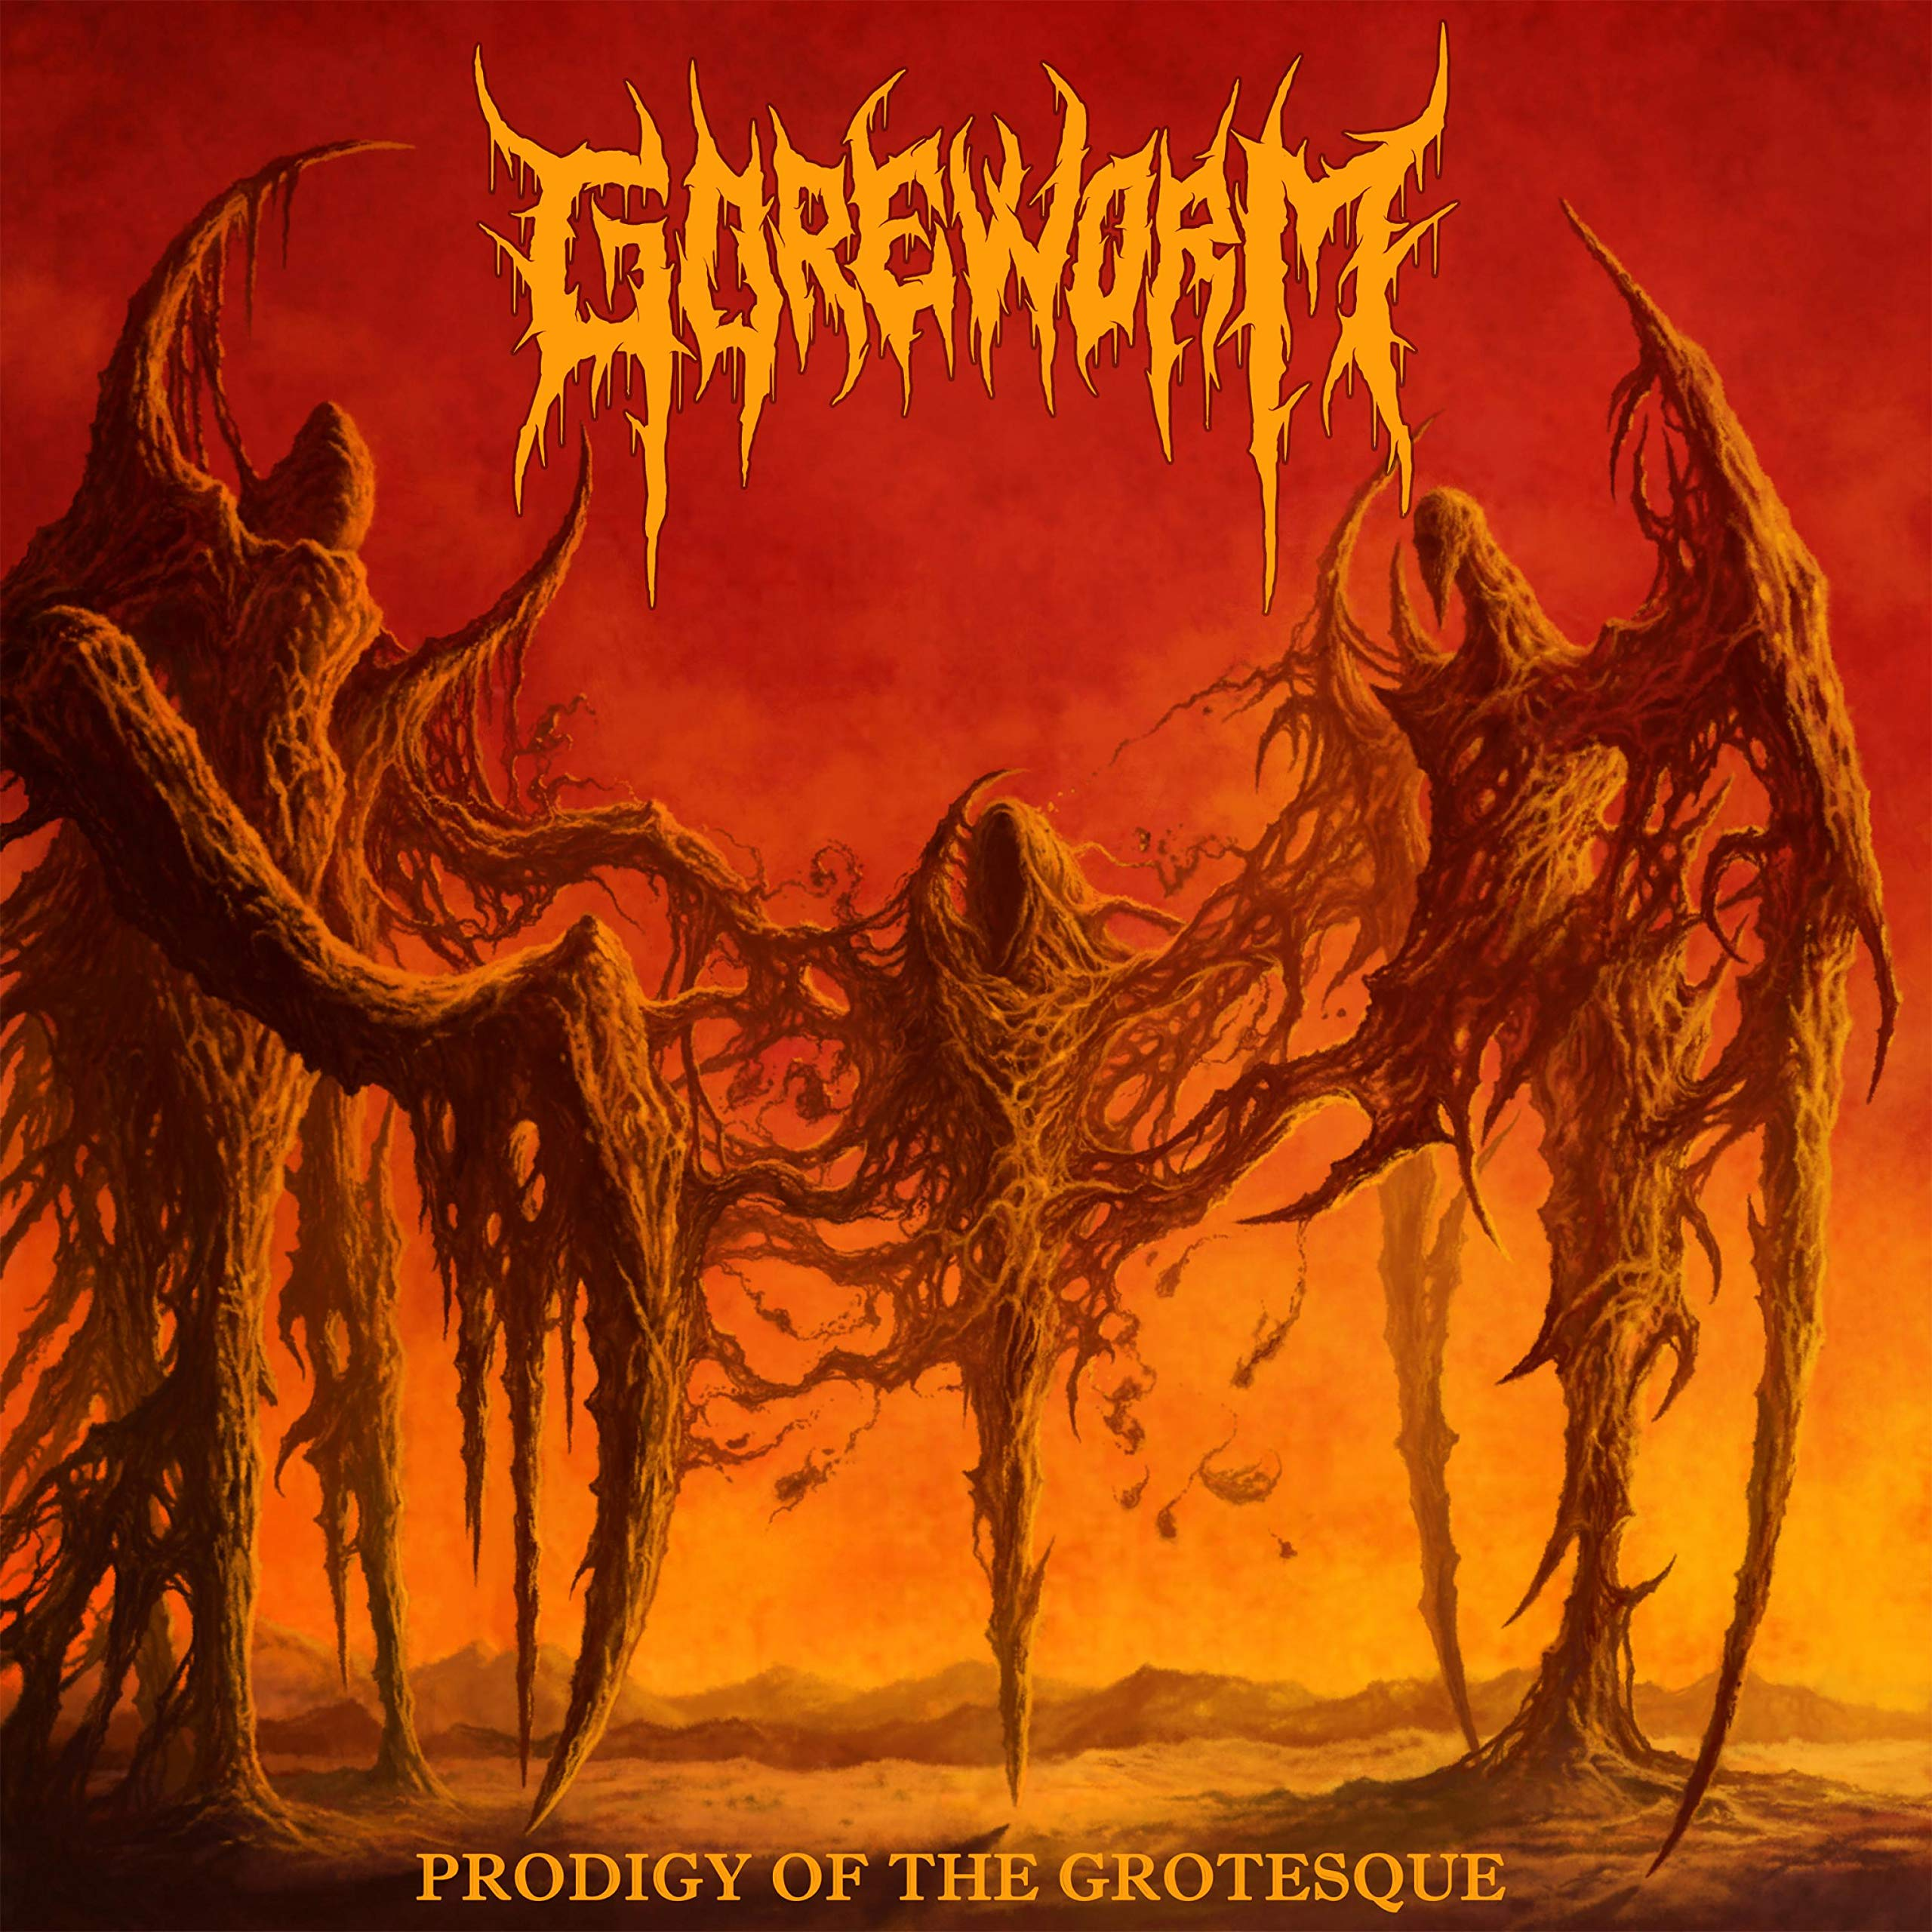 Goreworm - Prodigy of the Grotesque (2020) [FLAC] Download